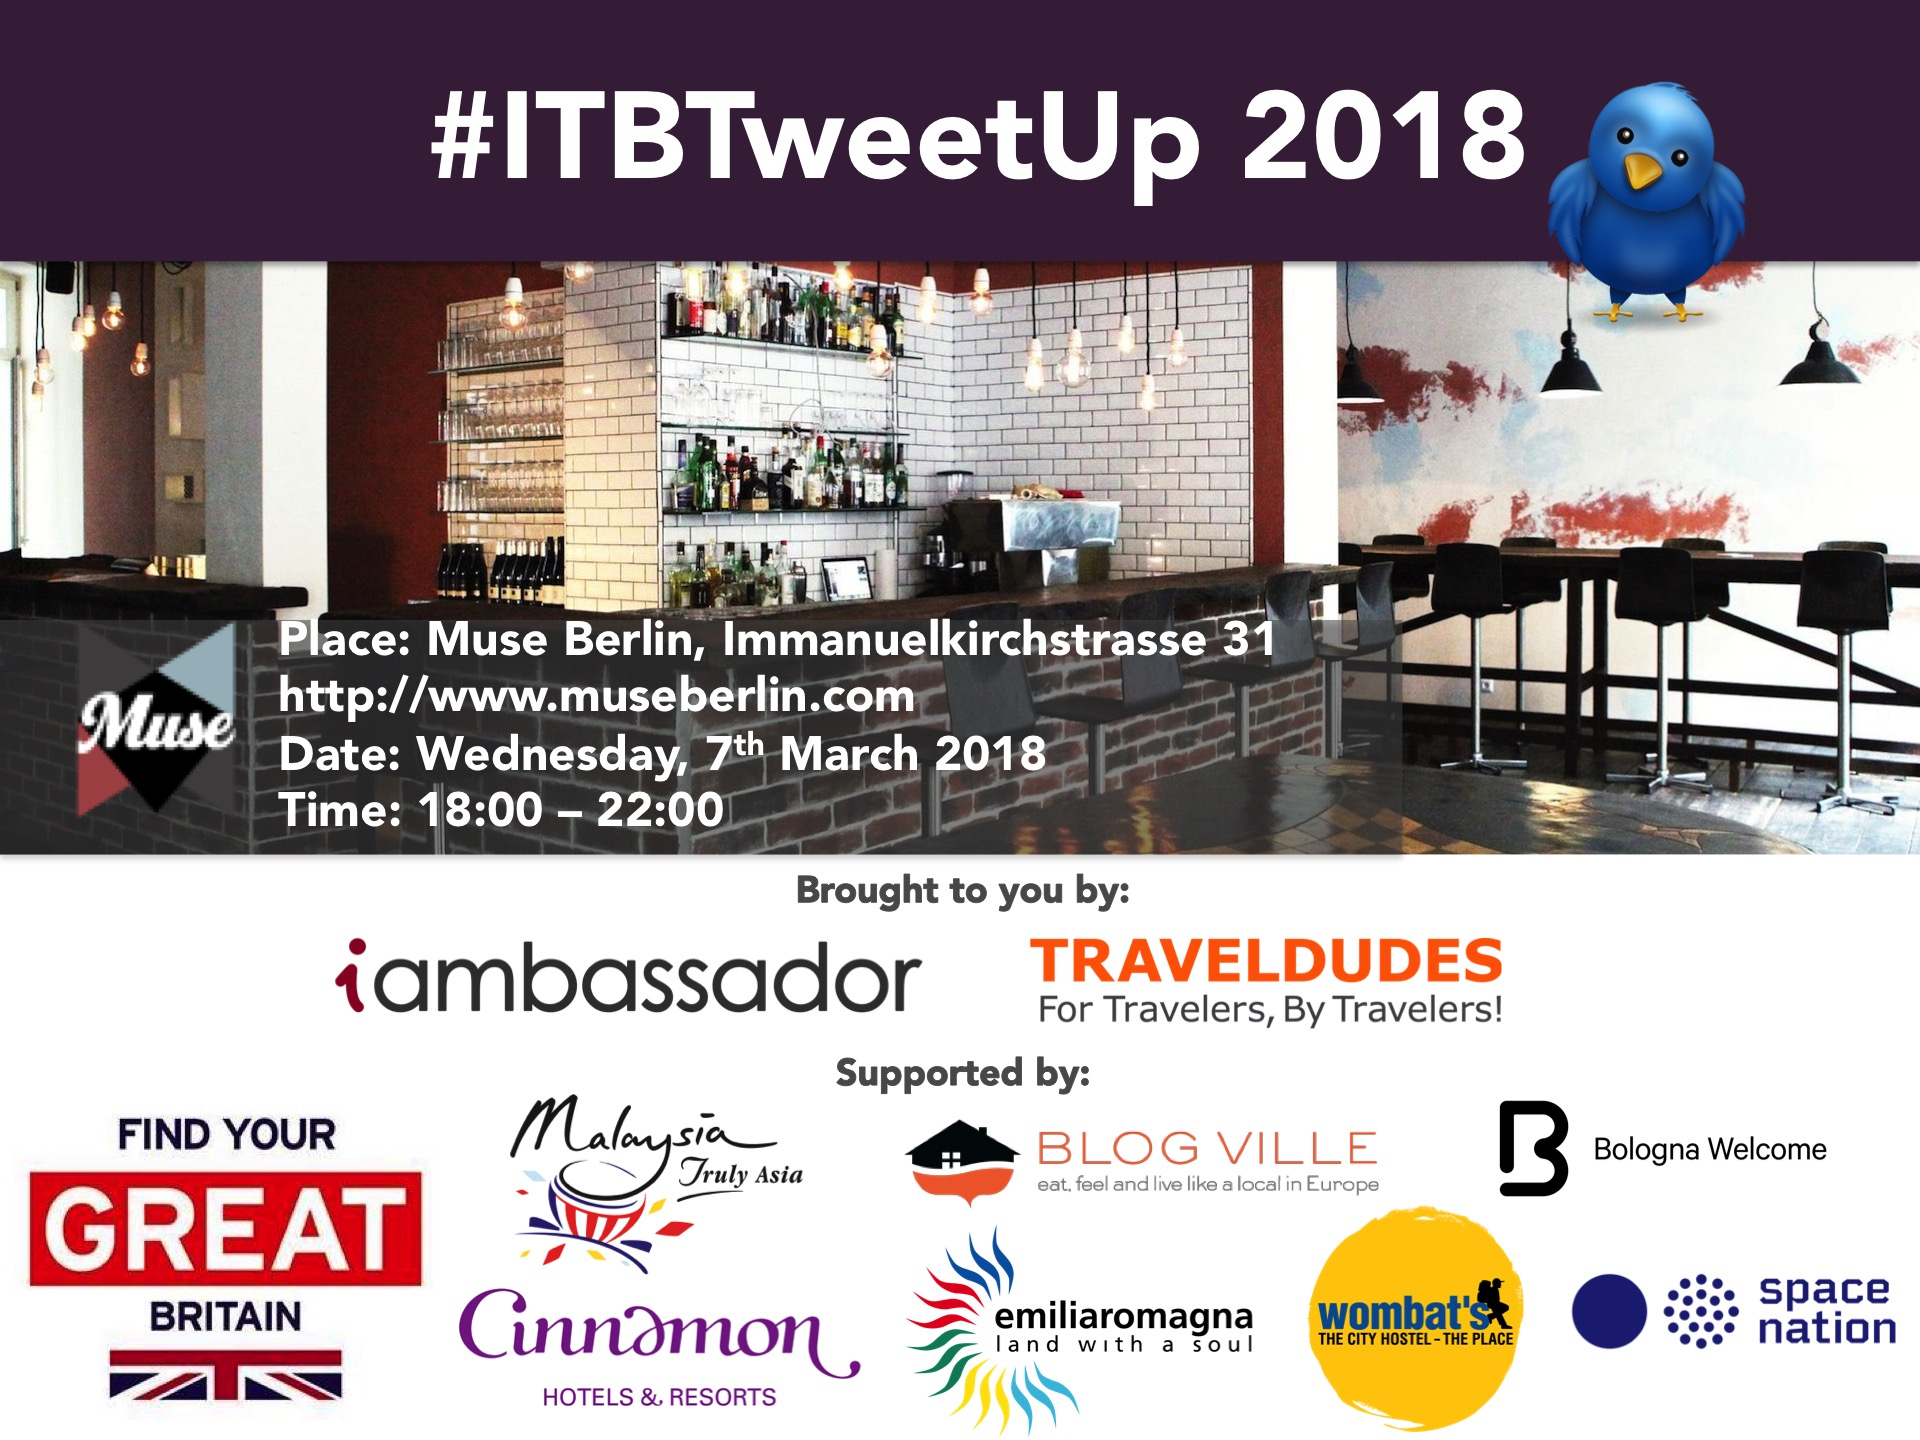 ITB Tweet-up 2018 logo